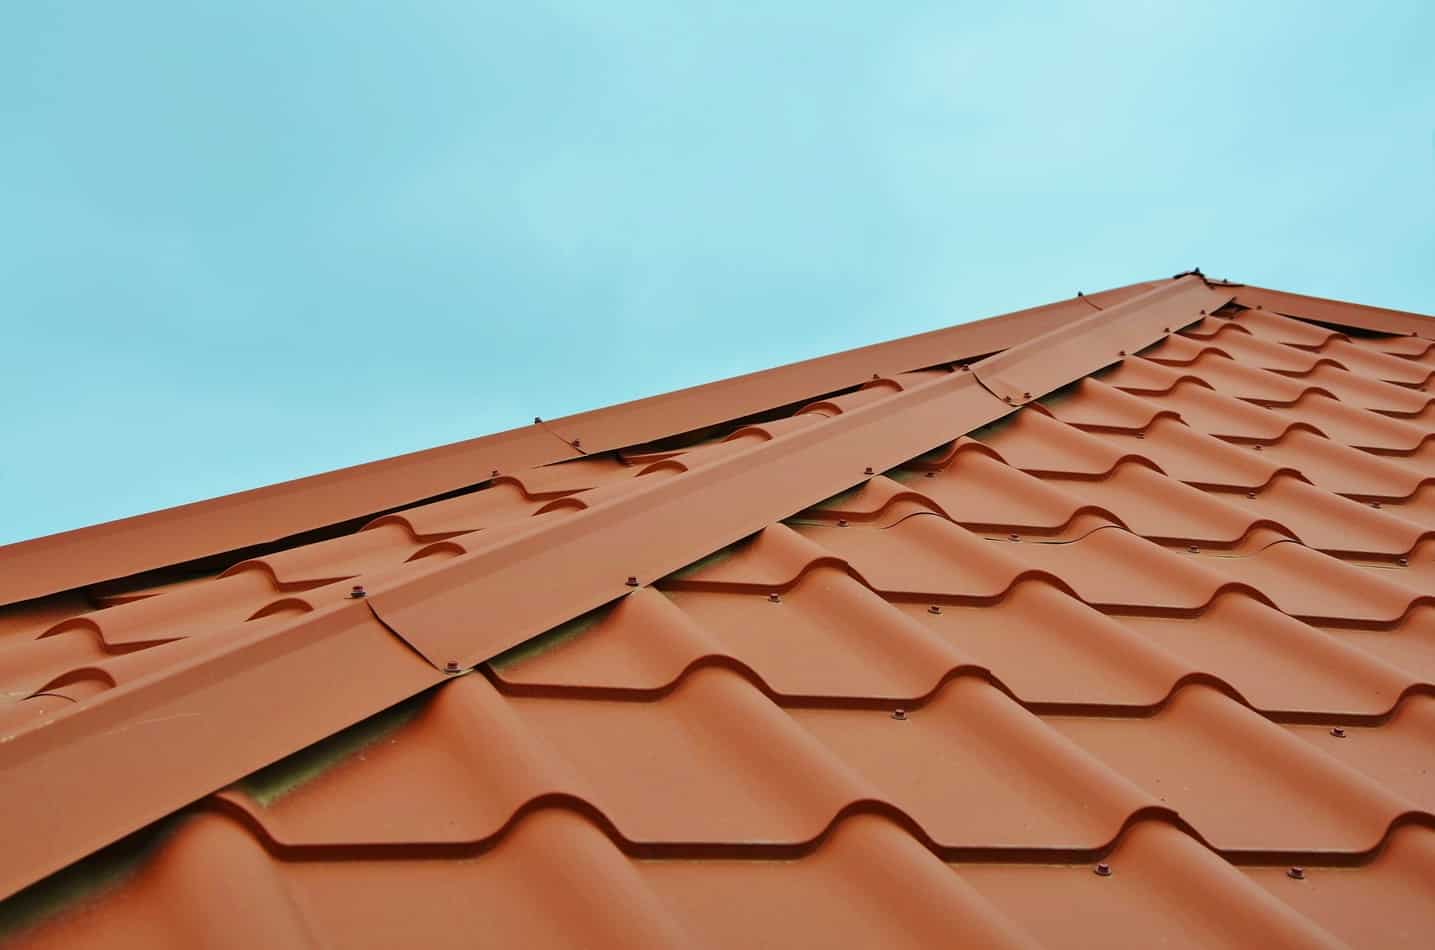 roof-2587752_1920